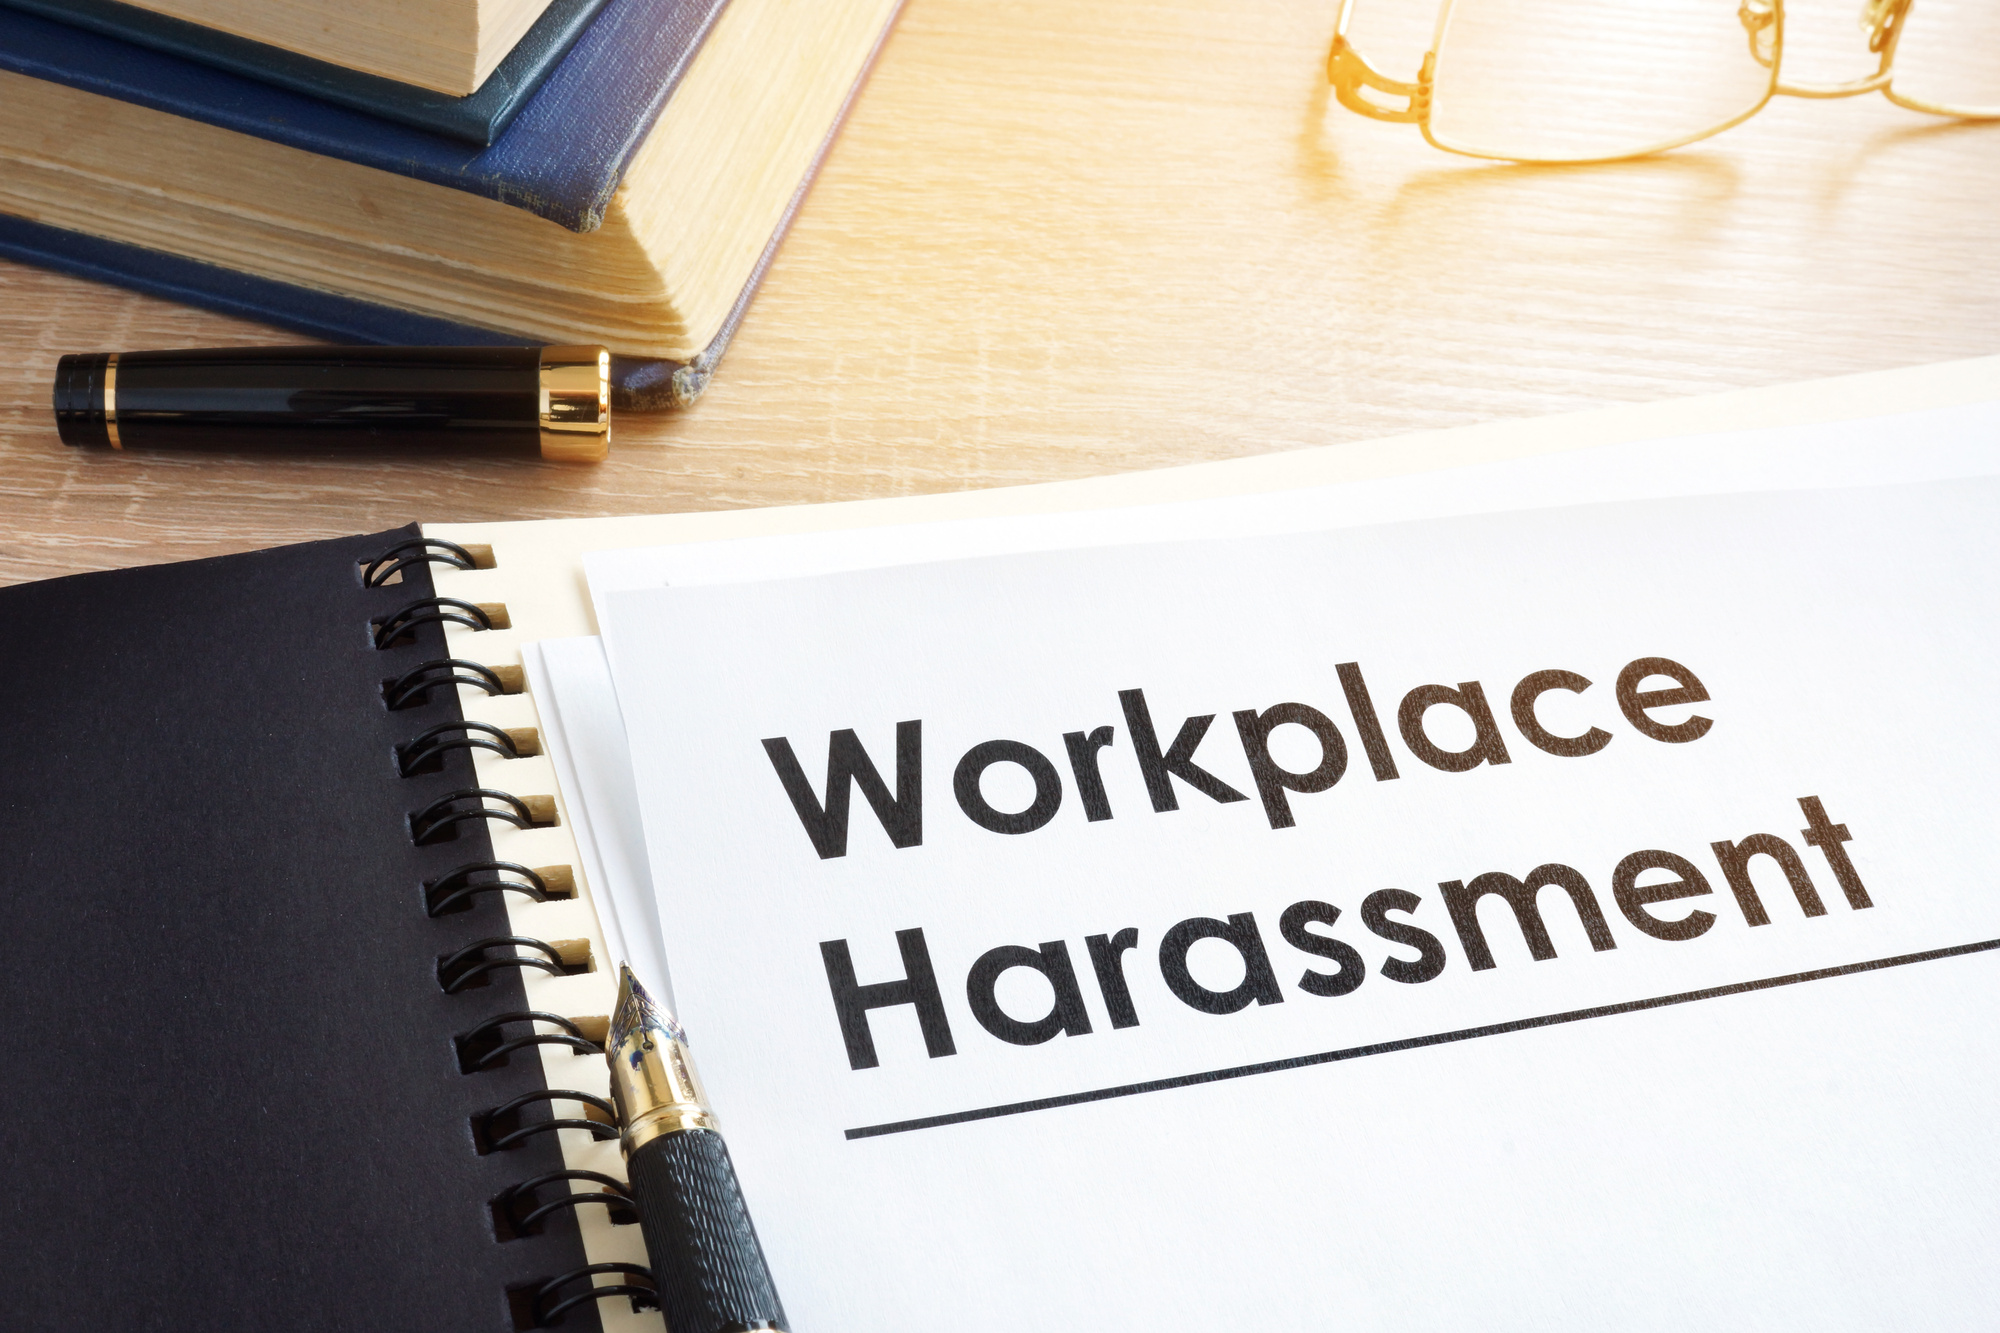 Documents about workplace harassment in an office.